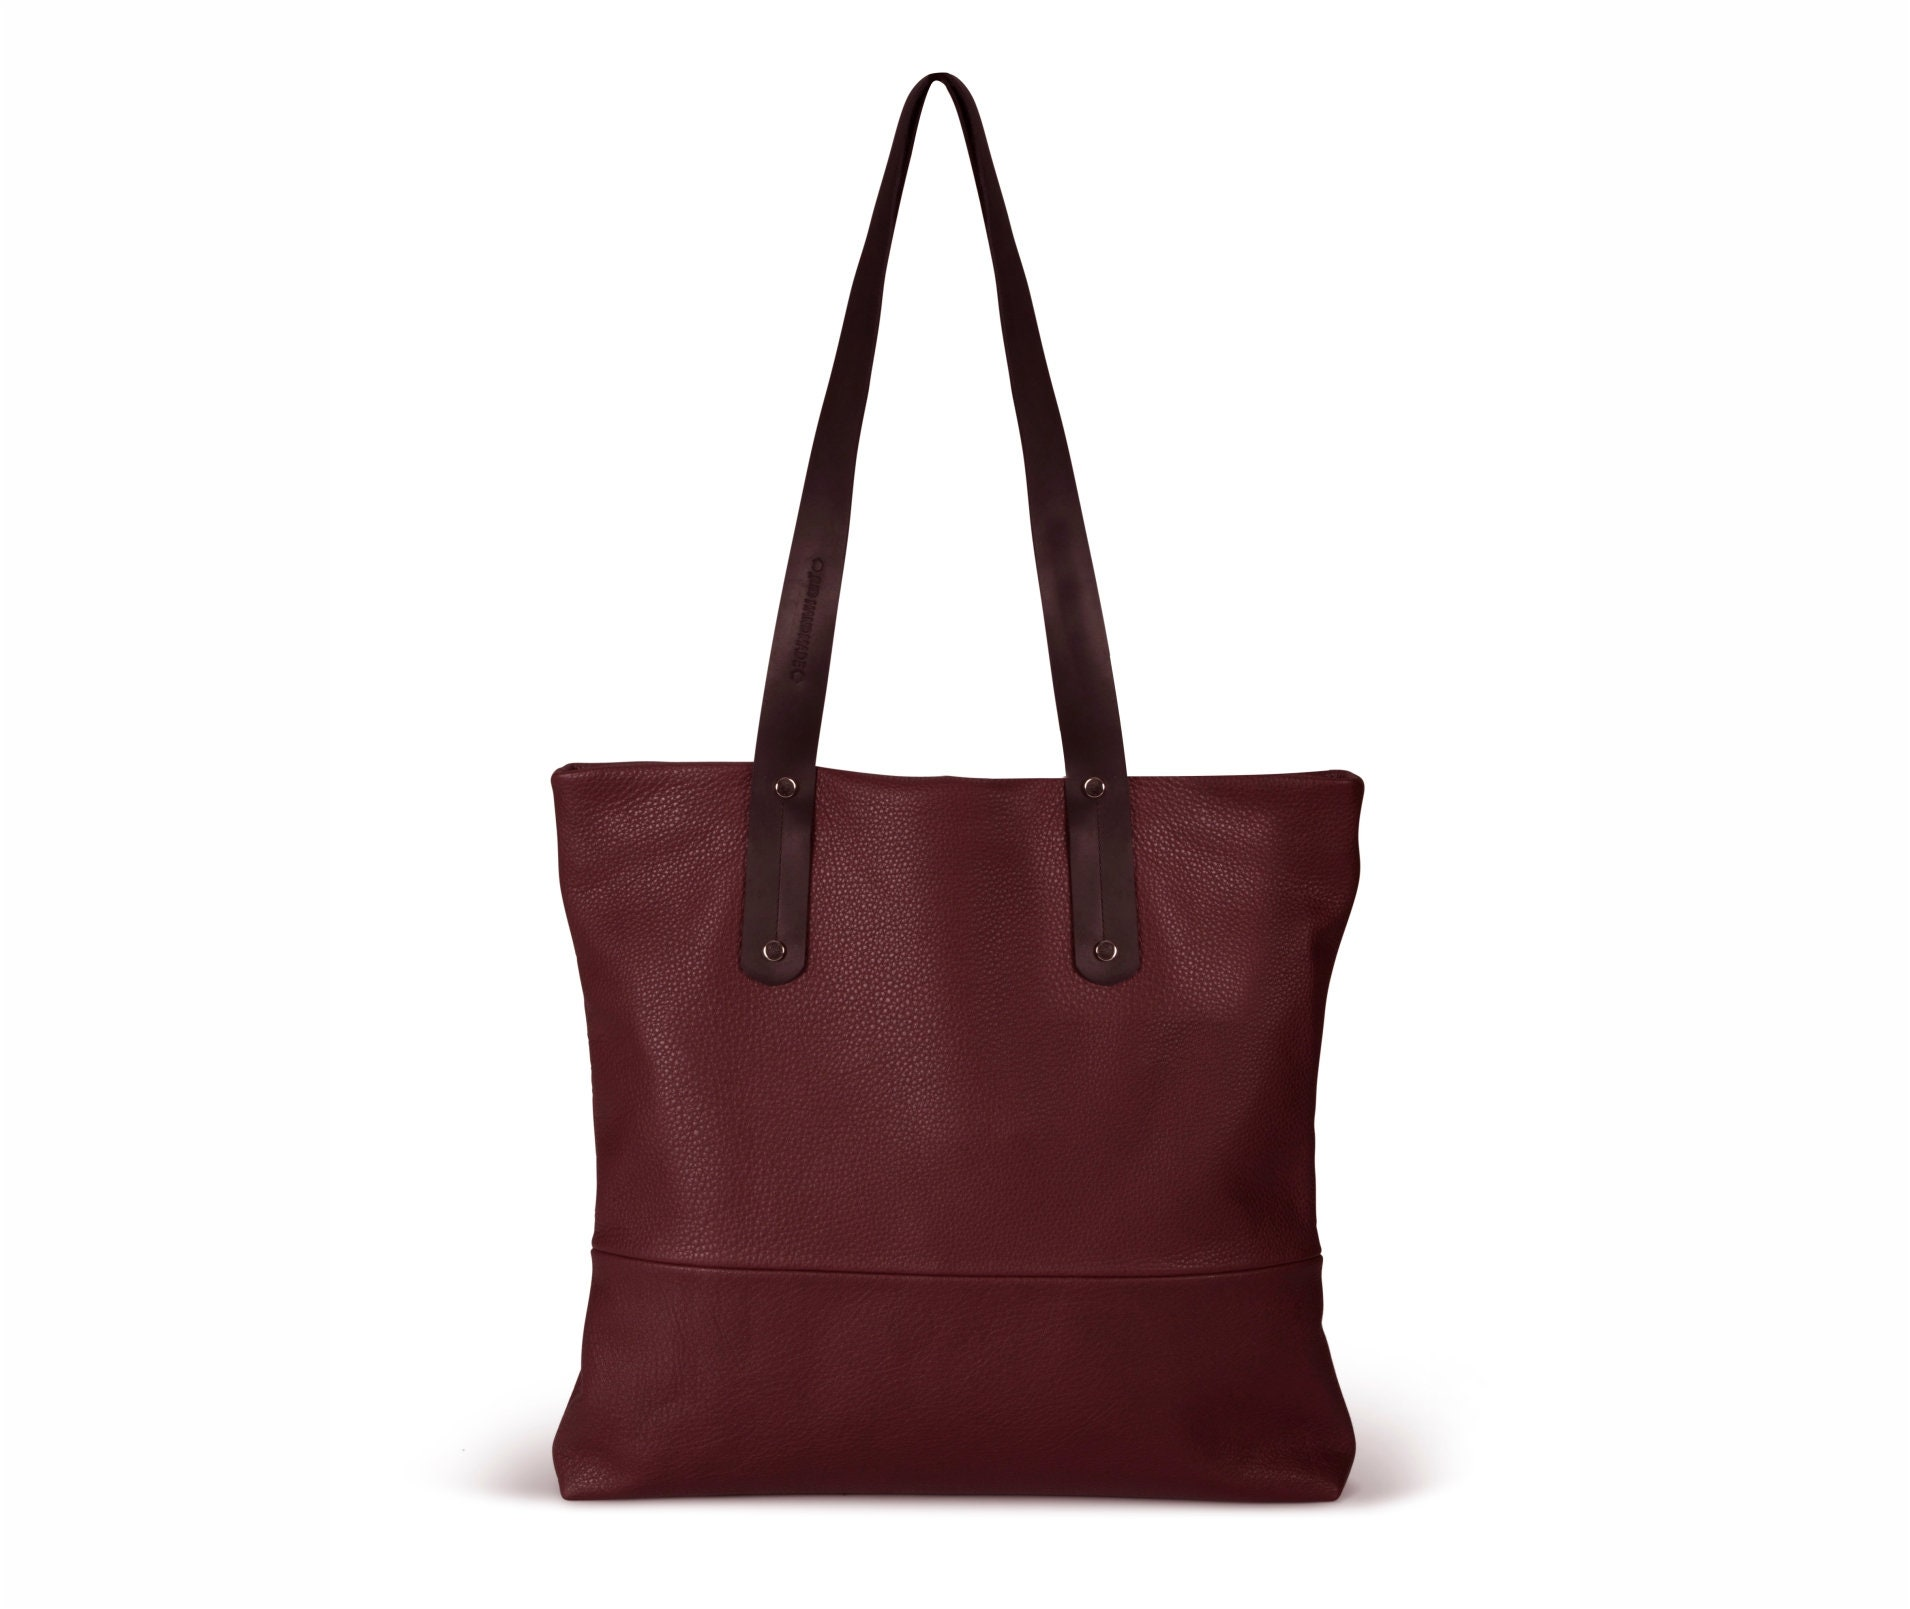 Bordeaux leather tote with zipper red leather bag women SALE  488cd27beffb9